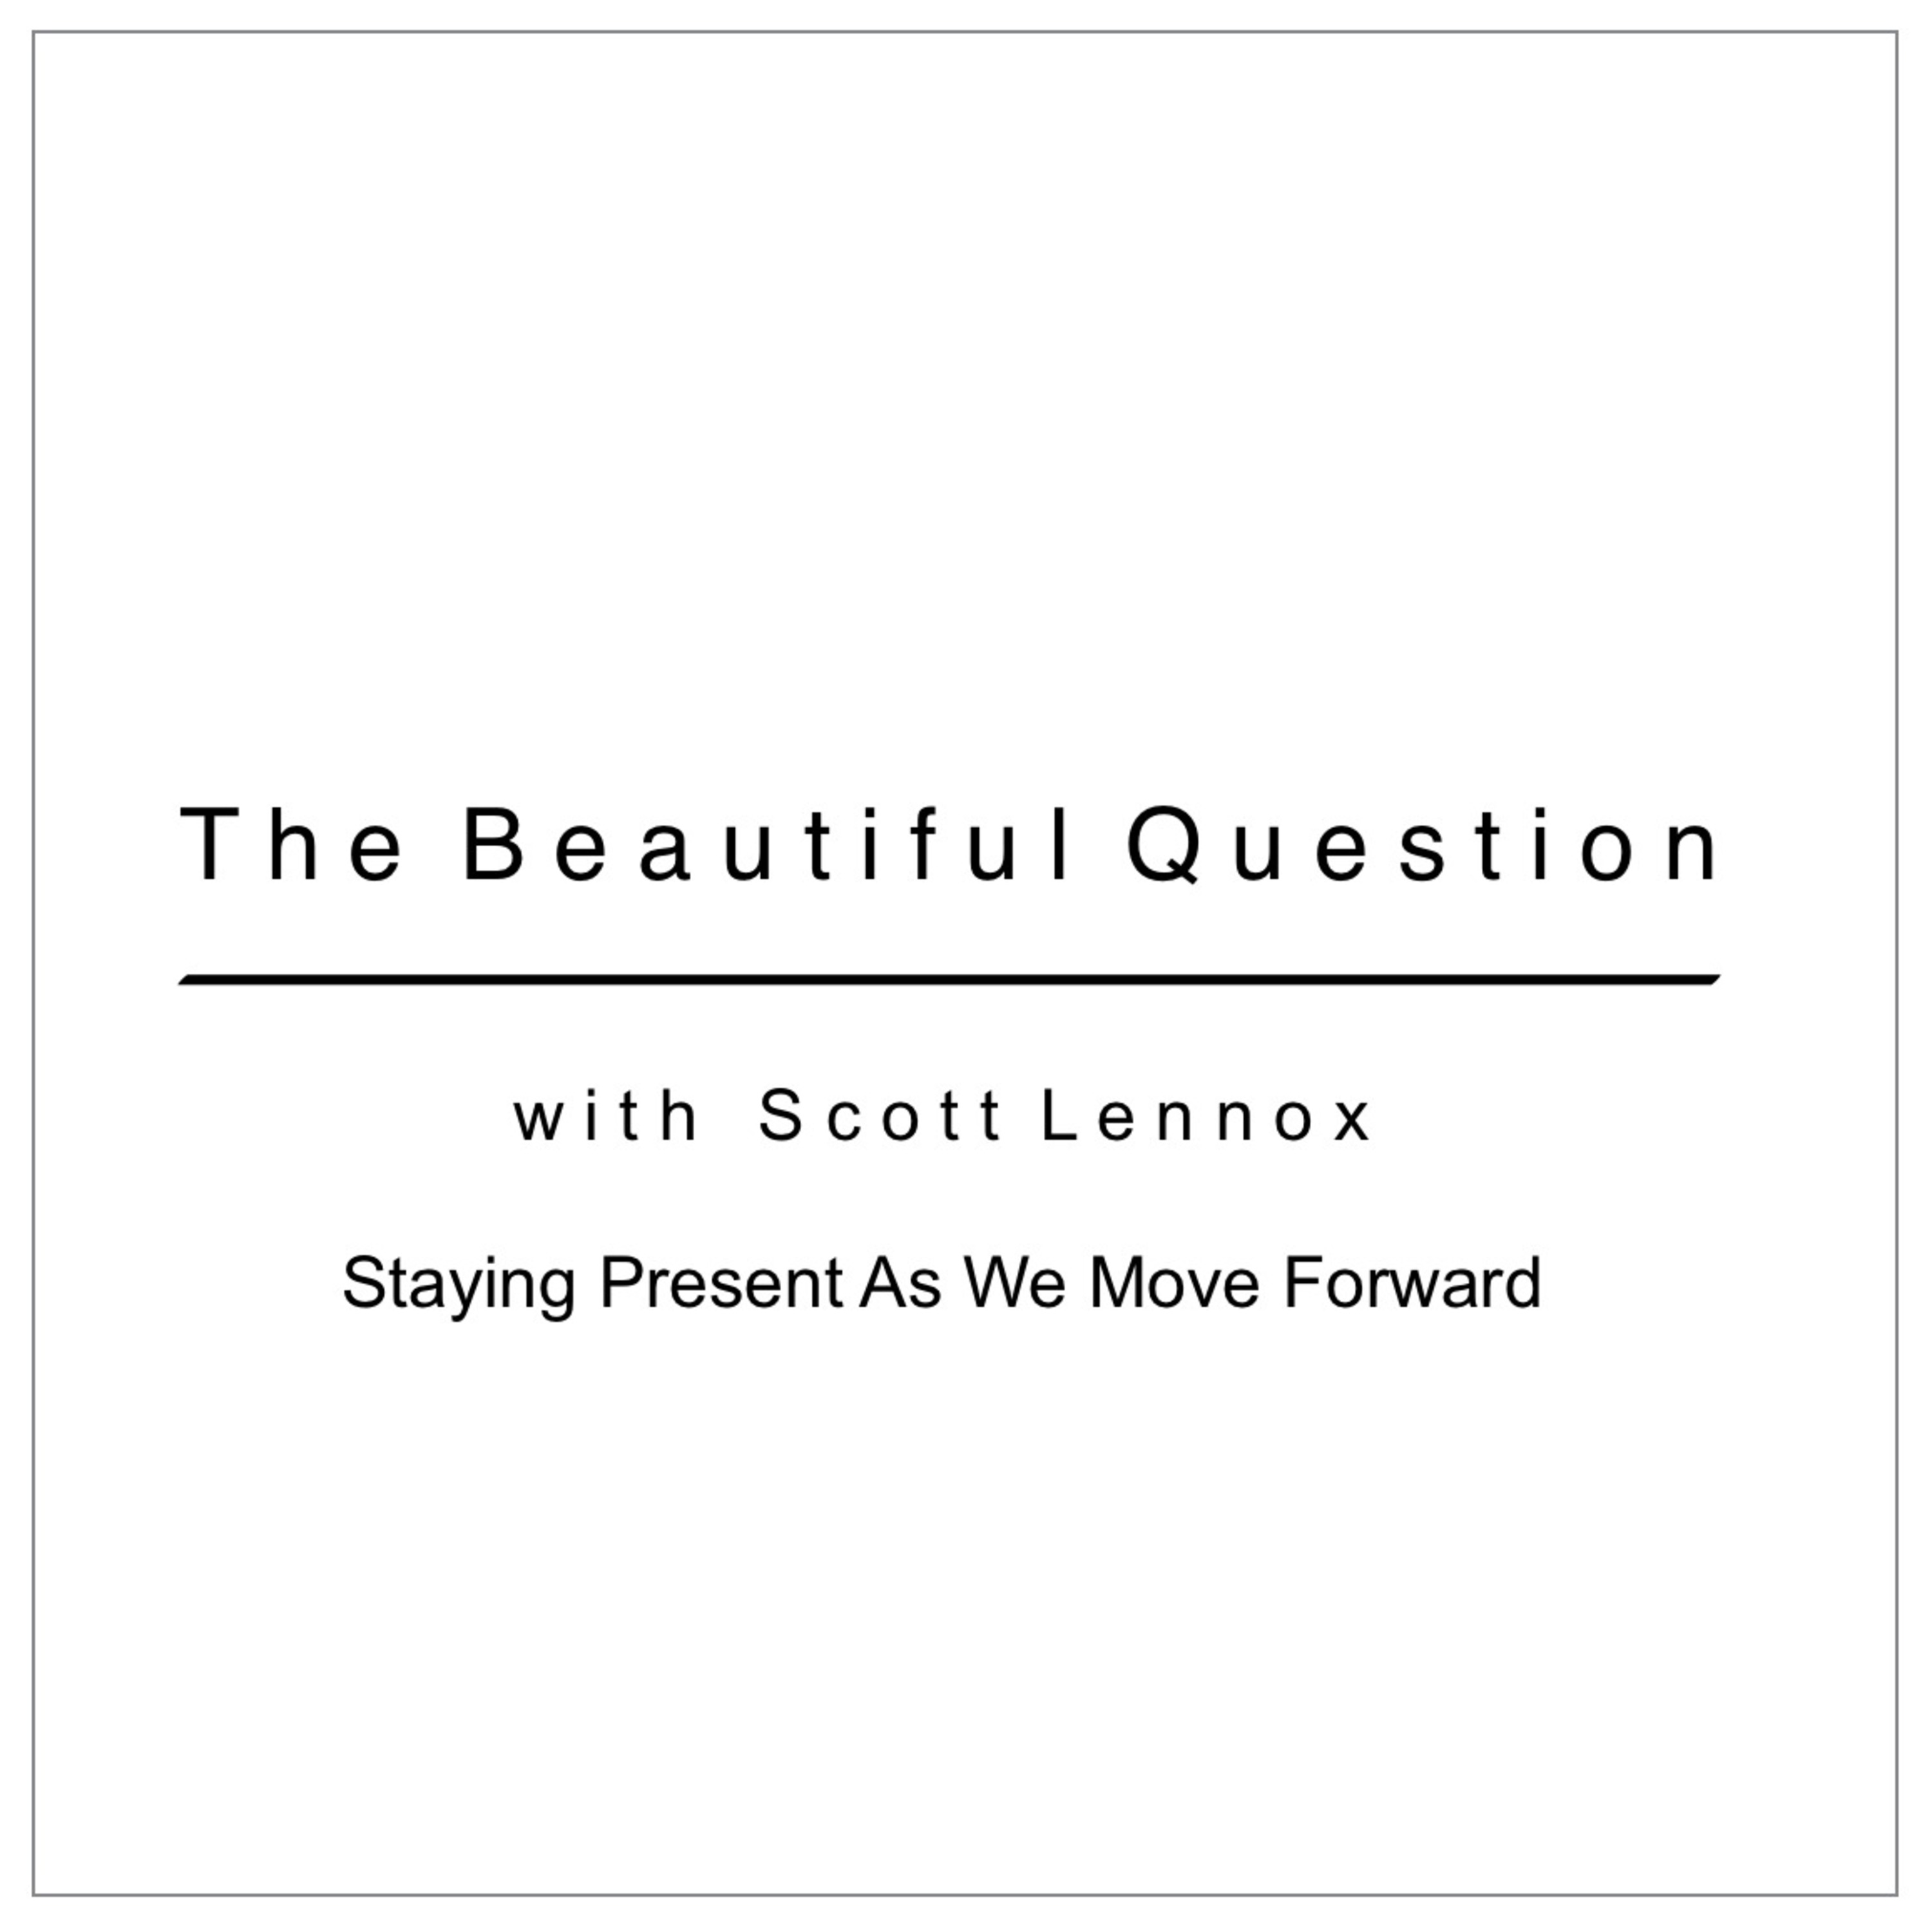 Staying Present As We Move Forward